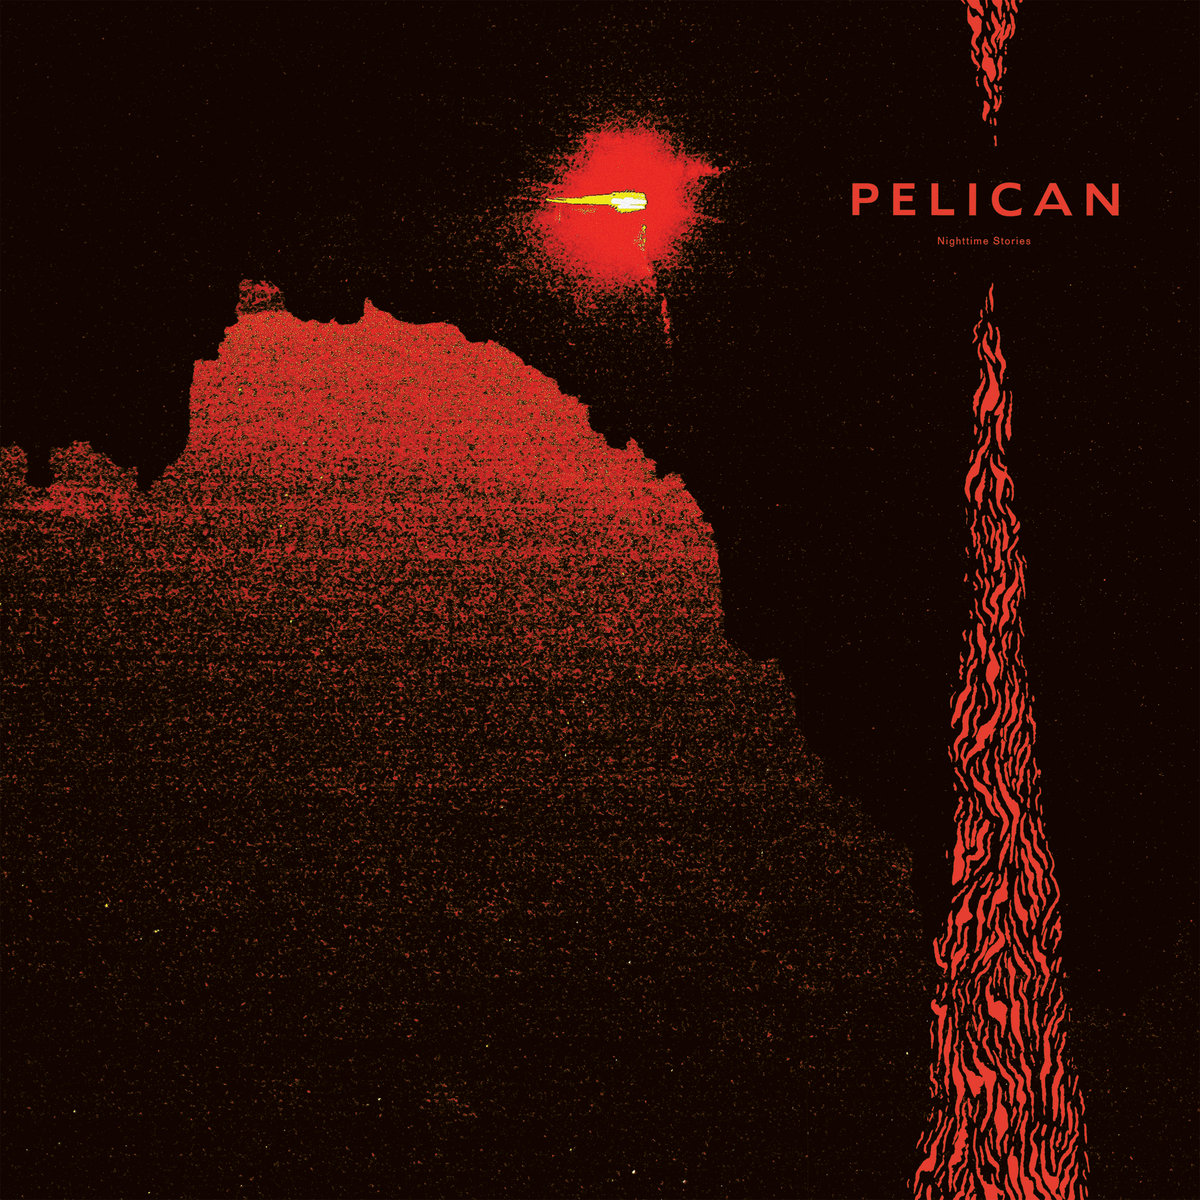 PELICAN - Nighttime Stories cover